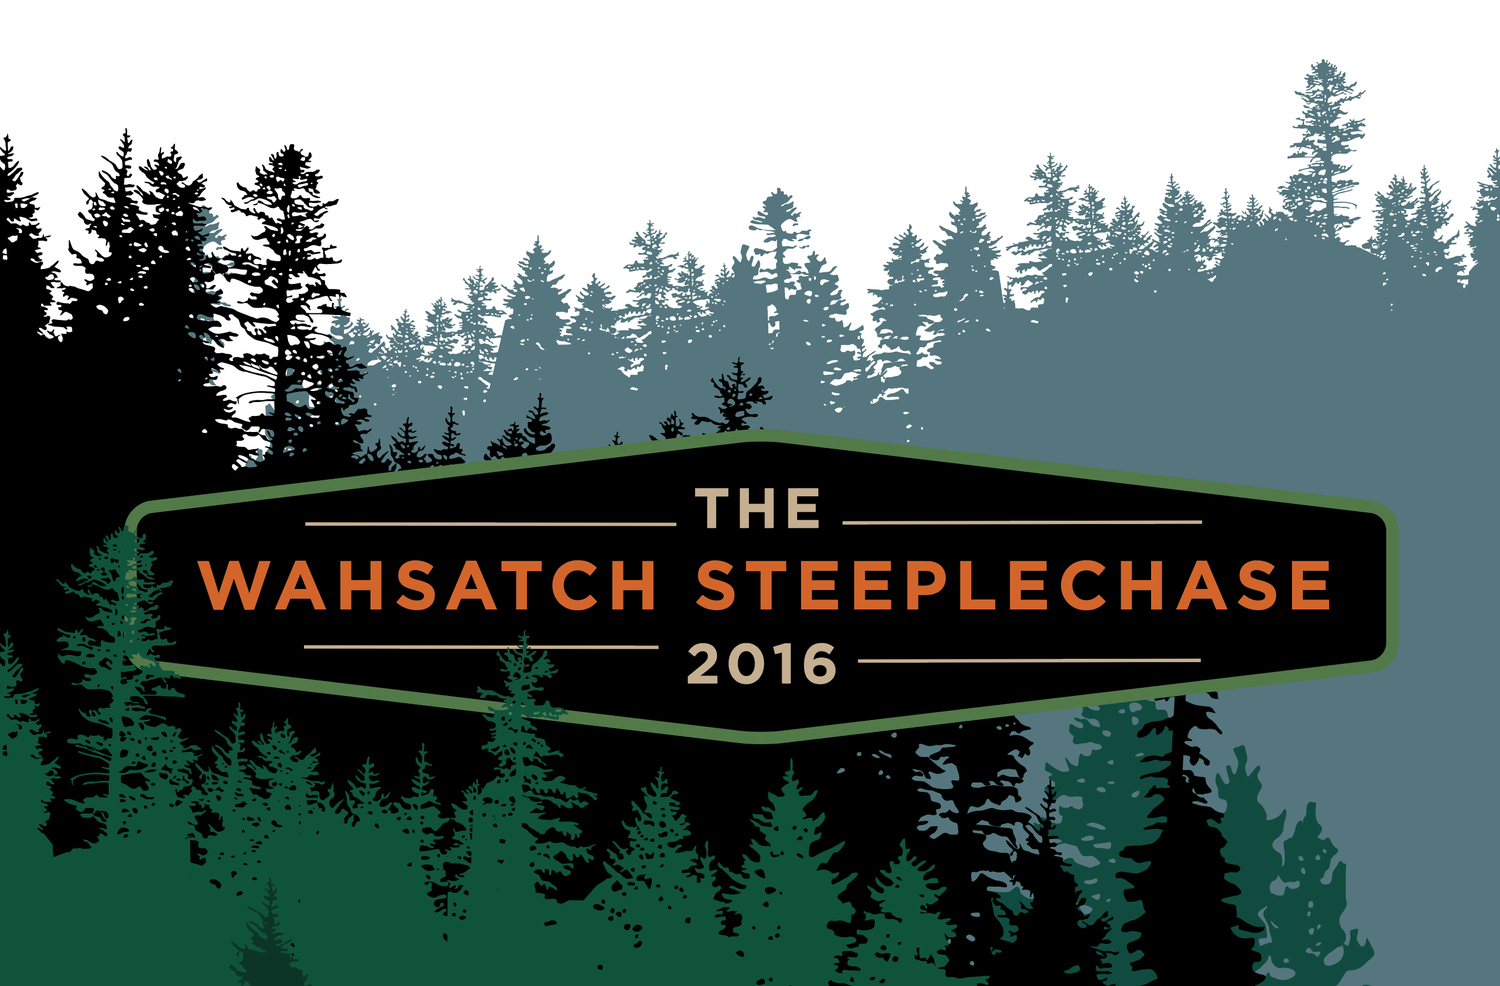 Wahsatch Steeplechase